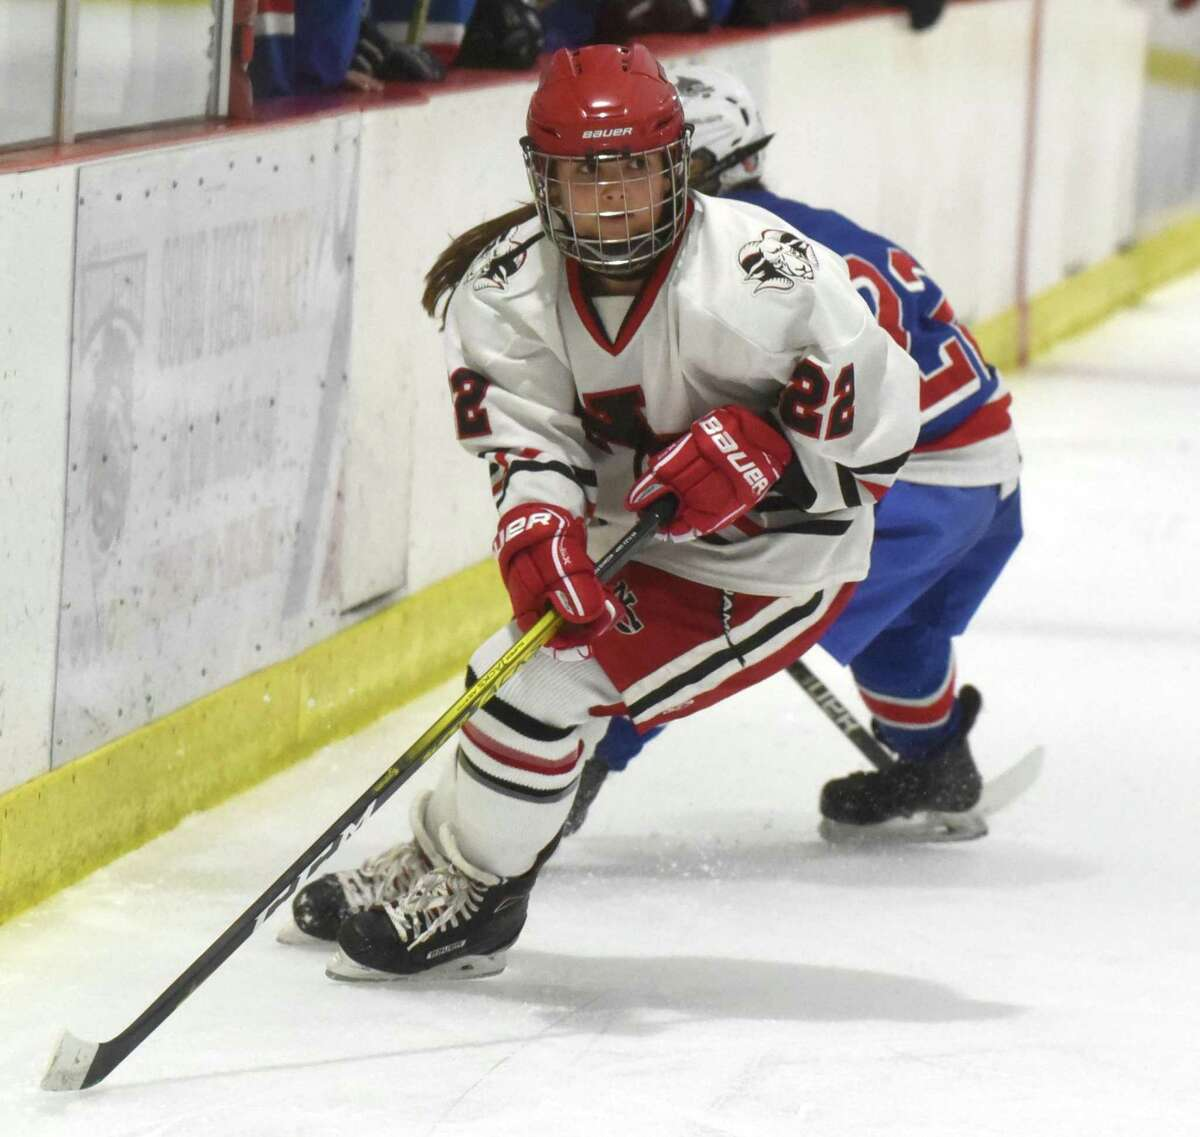 New Canaan's Grace Crowell (22) comes off the boards with the puck during the Rams' game against Fairfield in the FCIAC girls ice hockey semifinals at the Darien Ice House on Wednesday, Feb. 26, 2020.